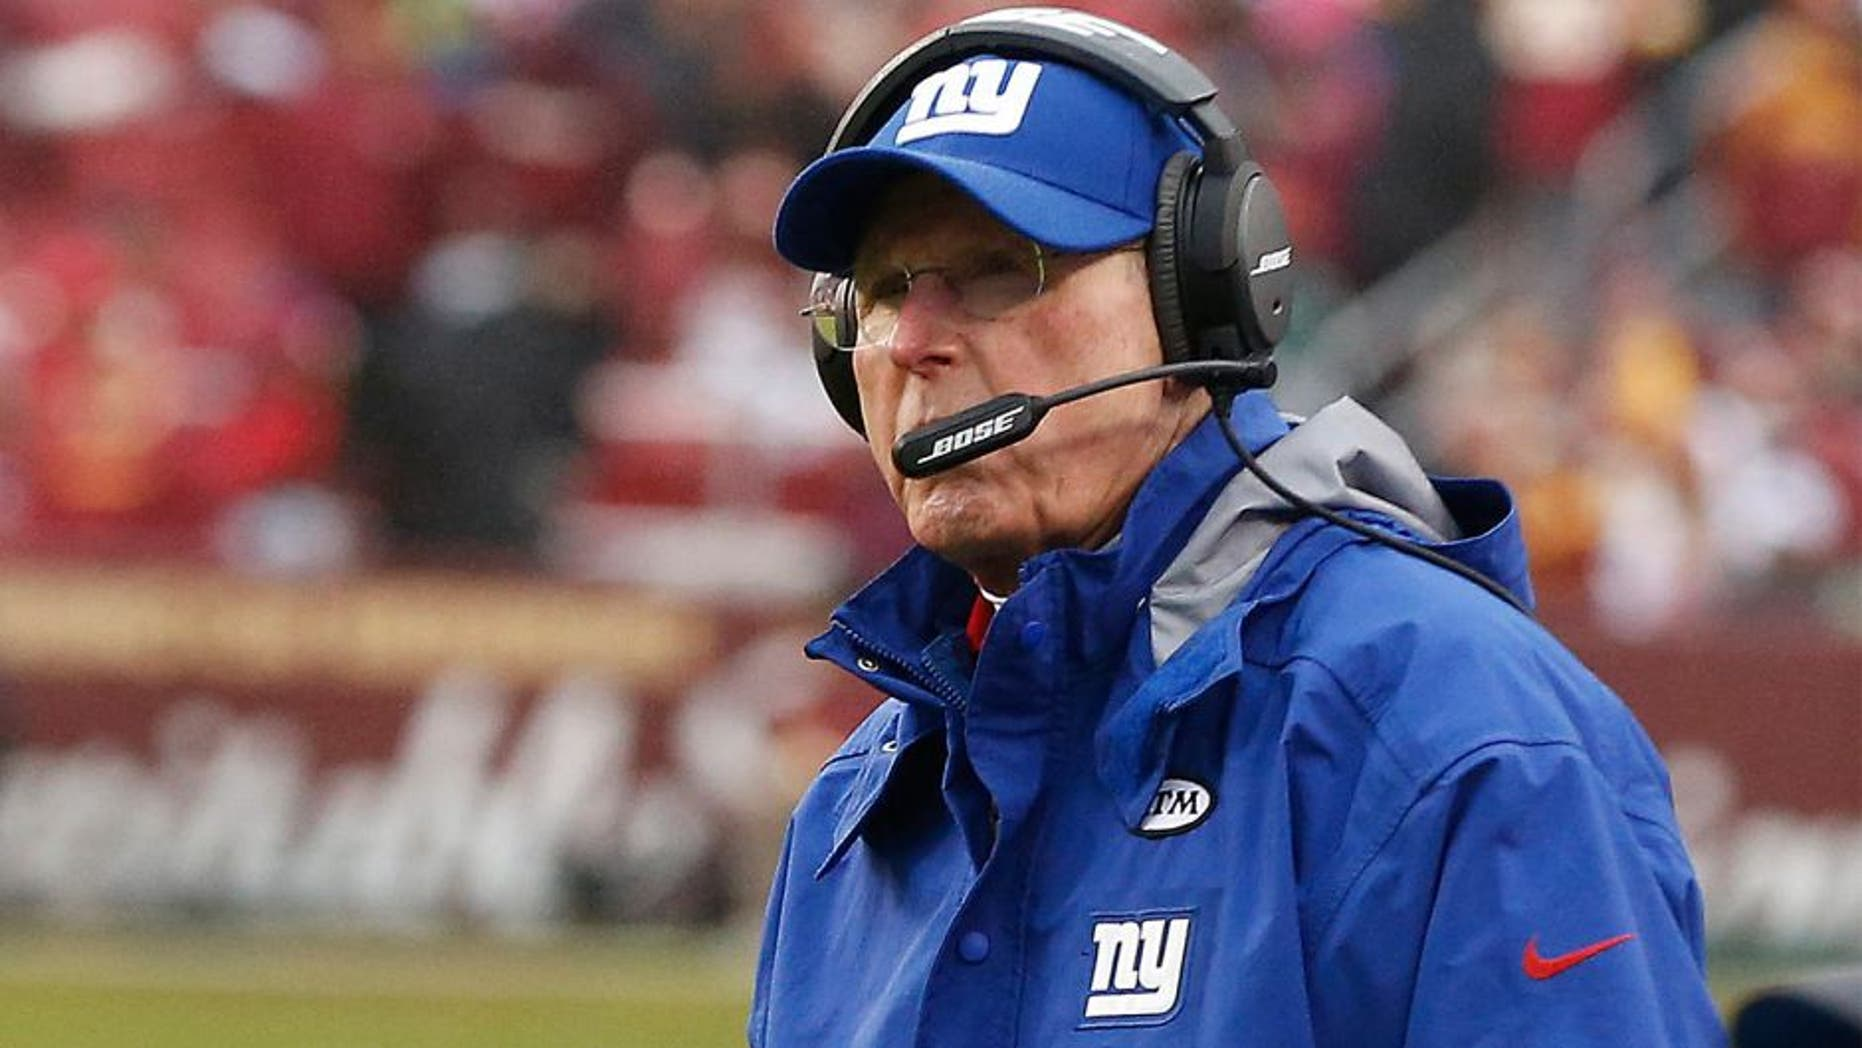 Nov 29, 2015; Landover, MD, USA; New York Giants head coach Tom Coughlin looks on from the sidelines against the Washington Redskins in the second quarter at FedEx Field. The Redskins won 20-14. Mandatory Credit: Geoff Burke-USA TODAY Sports